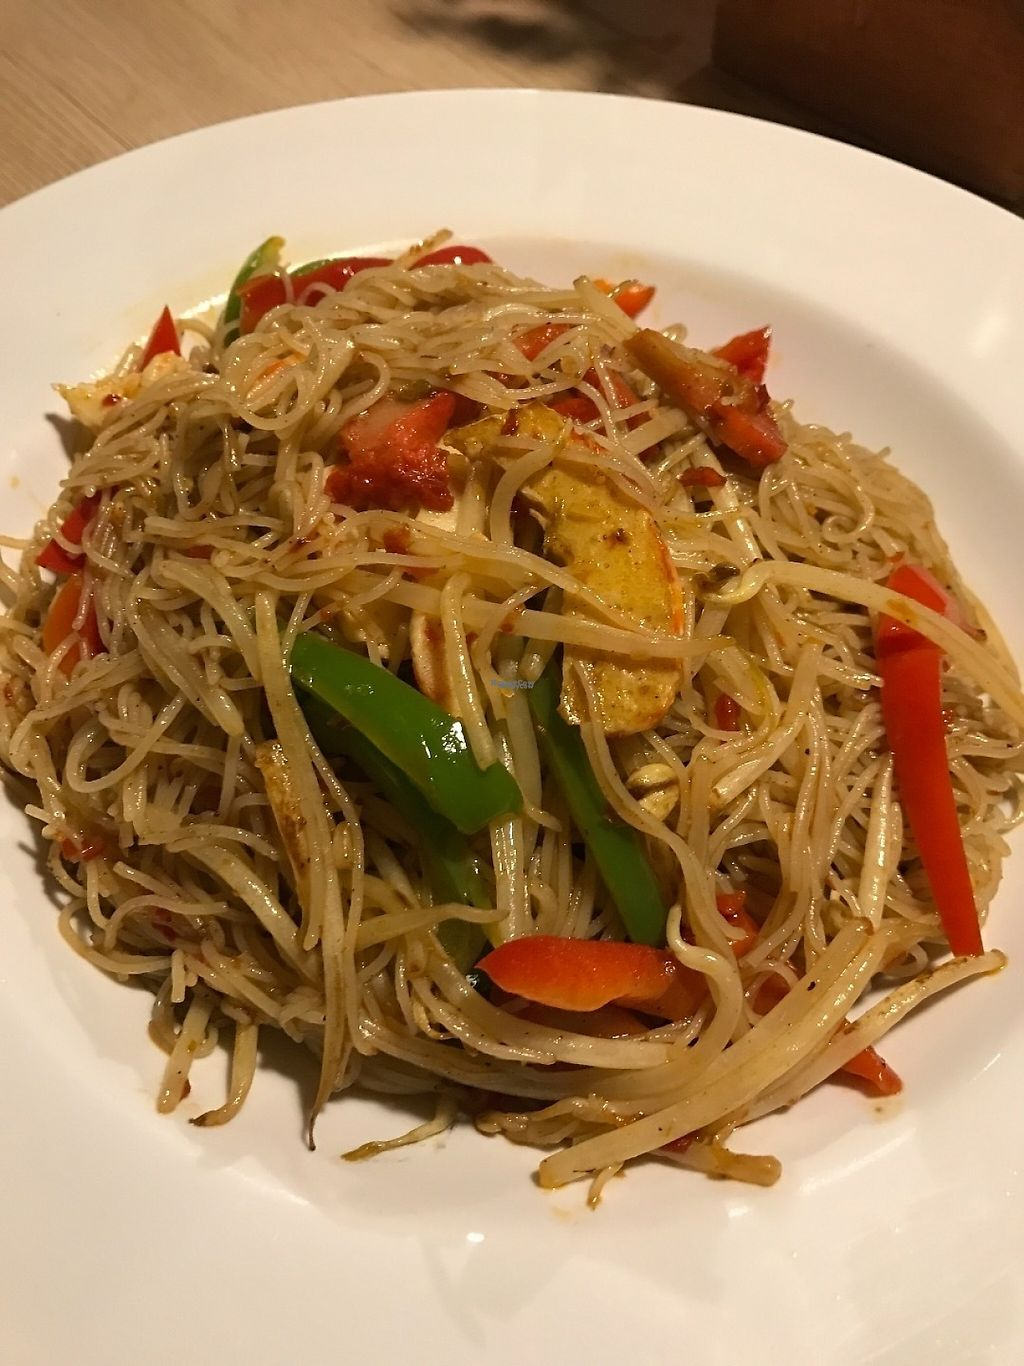 """Photo of Veggie Village  by <a href=""""/members/profile/Tigra220"""">Tigra220</a> <br/>Singapore Fried Rice Noodle <br/> January 27, 2017  - <a href='/contact/abuse/image/76977/217942'>Report</a>"""